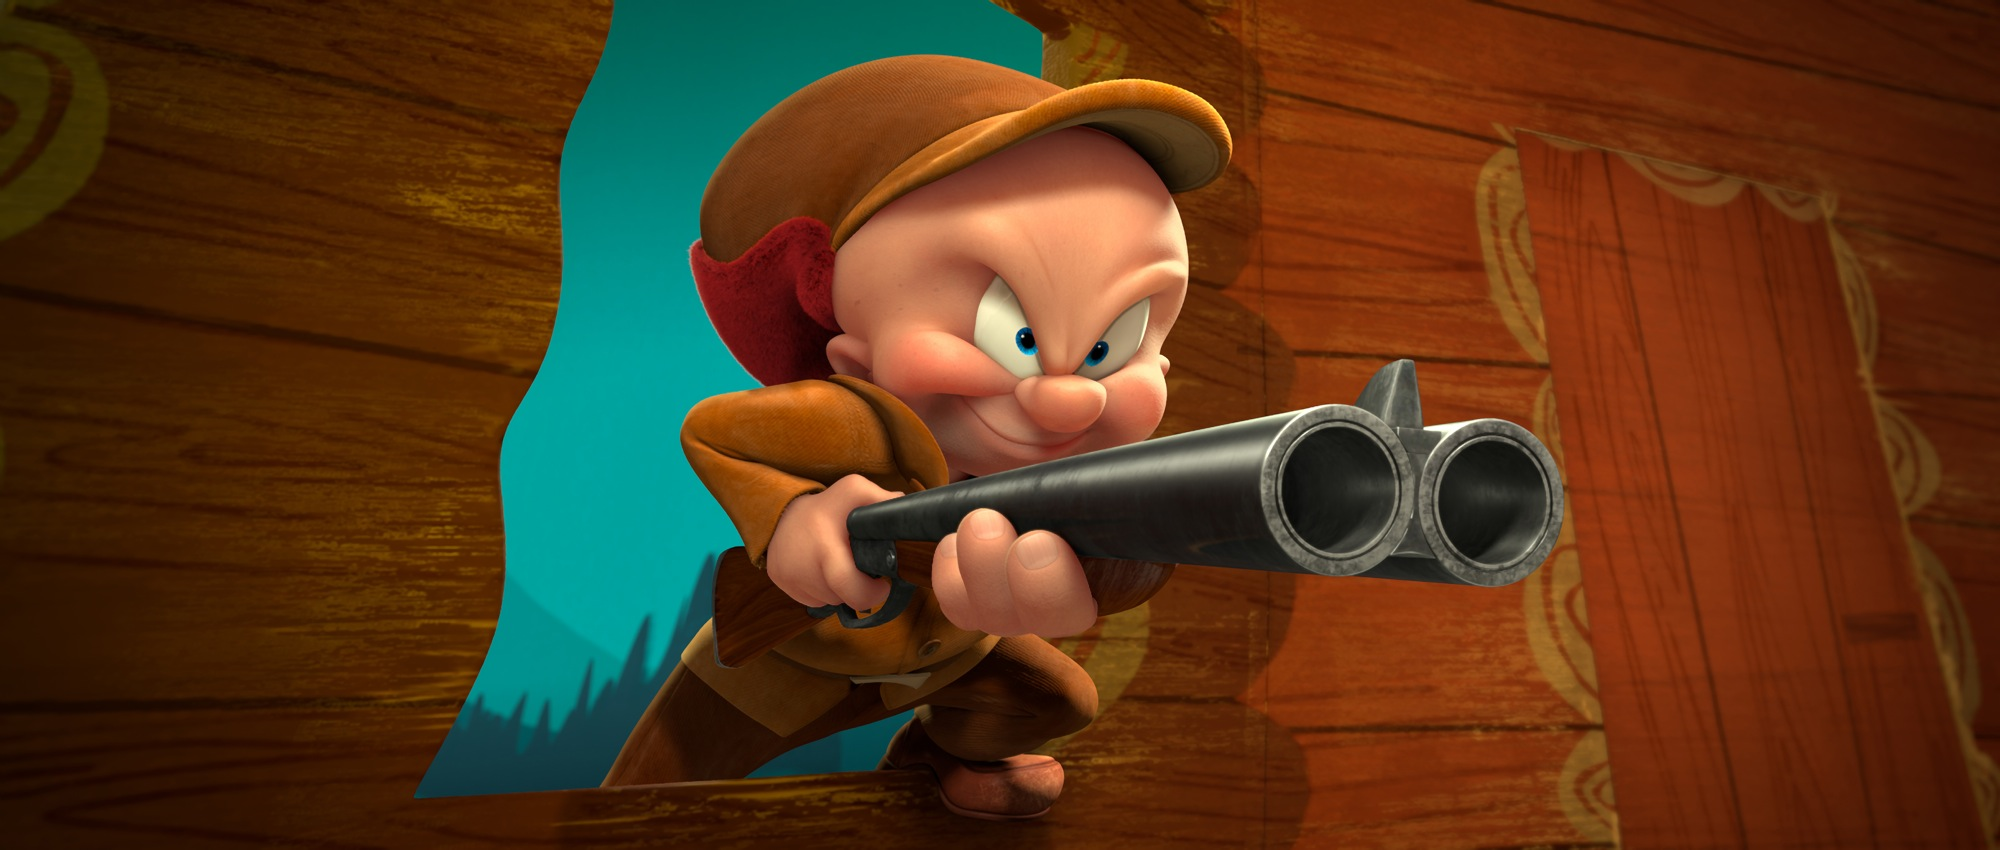 Elmer Fudd is on the hunt in the new Looney Tunes 3D theatrical short DAFFY'S RHAPSODY, debuting in theaters on February 10, in conjunction with Warner Bros. Picturesí release of Journey 2: The Mysterious Island.